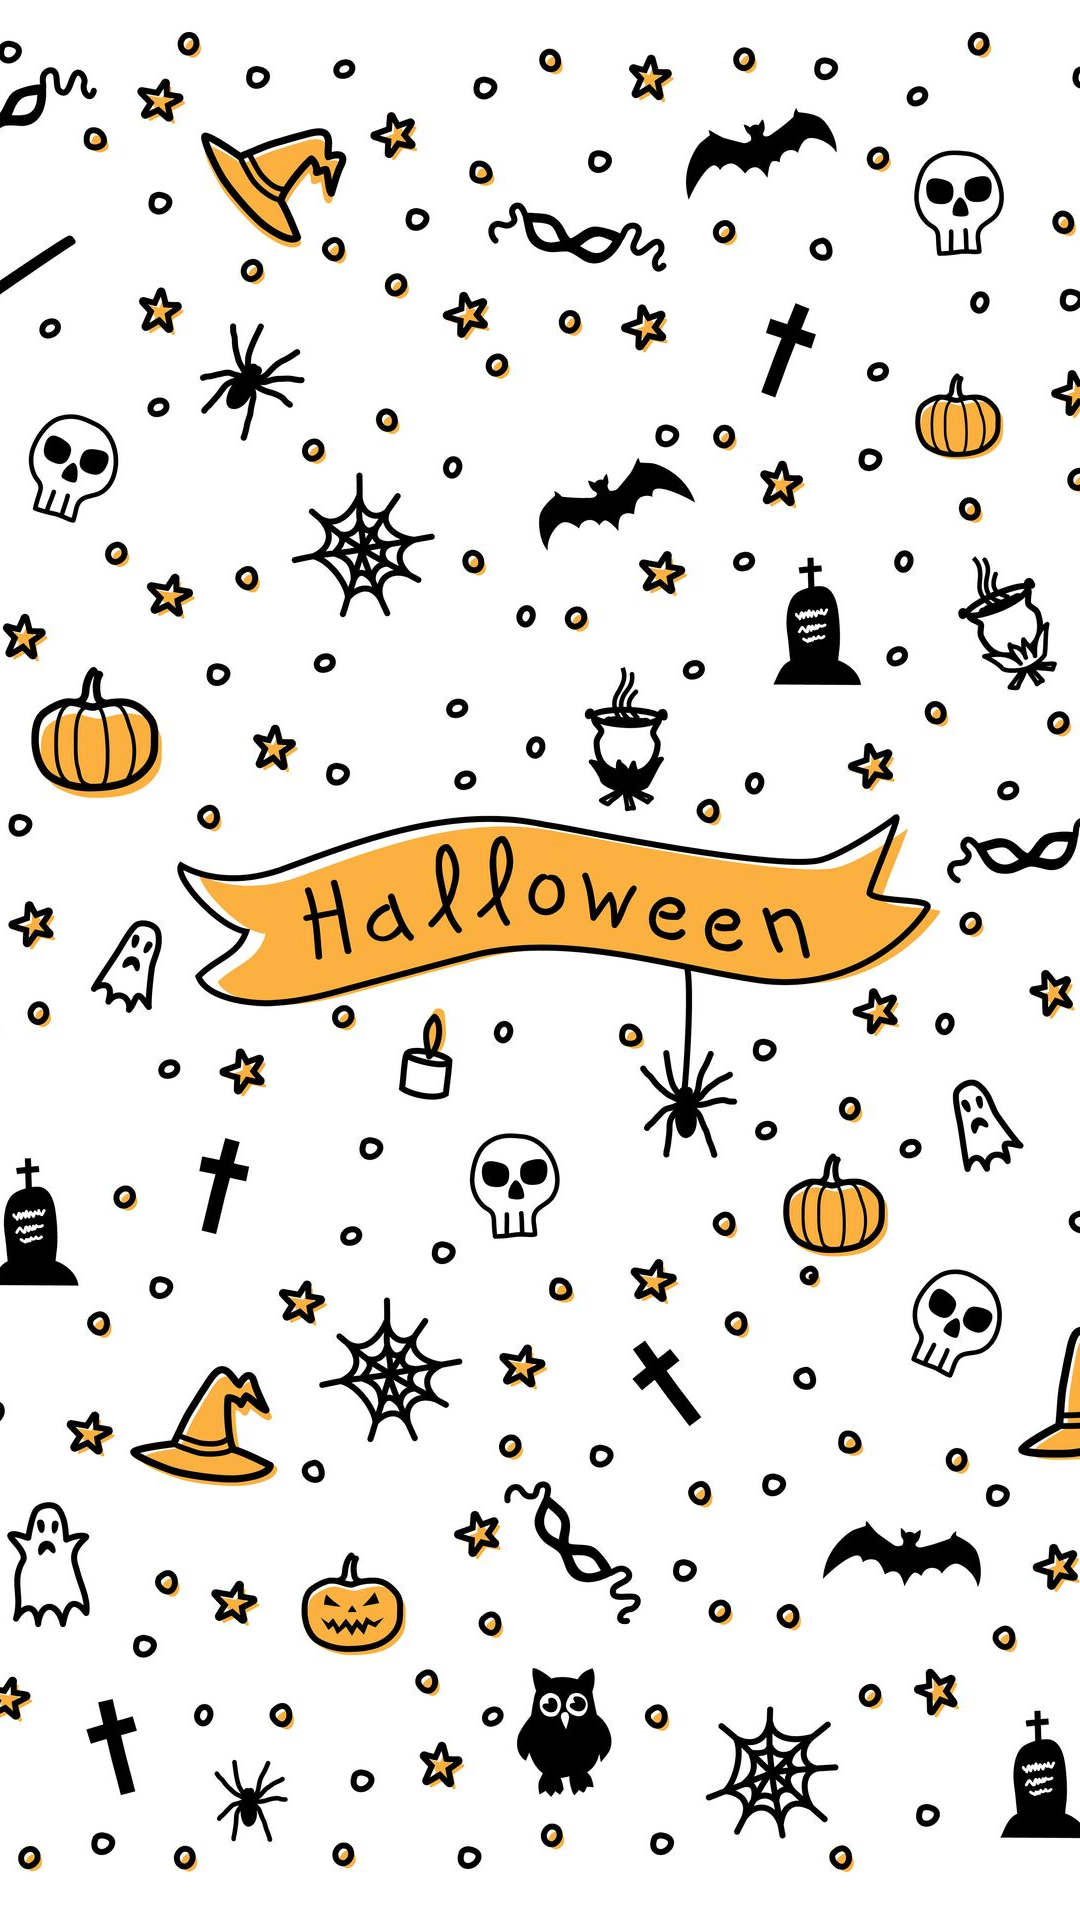 Color pattern for Halloween - Vector